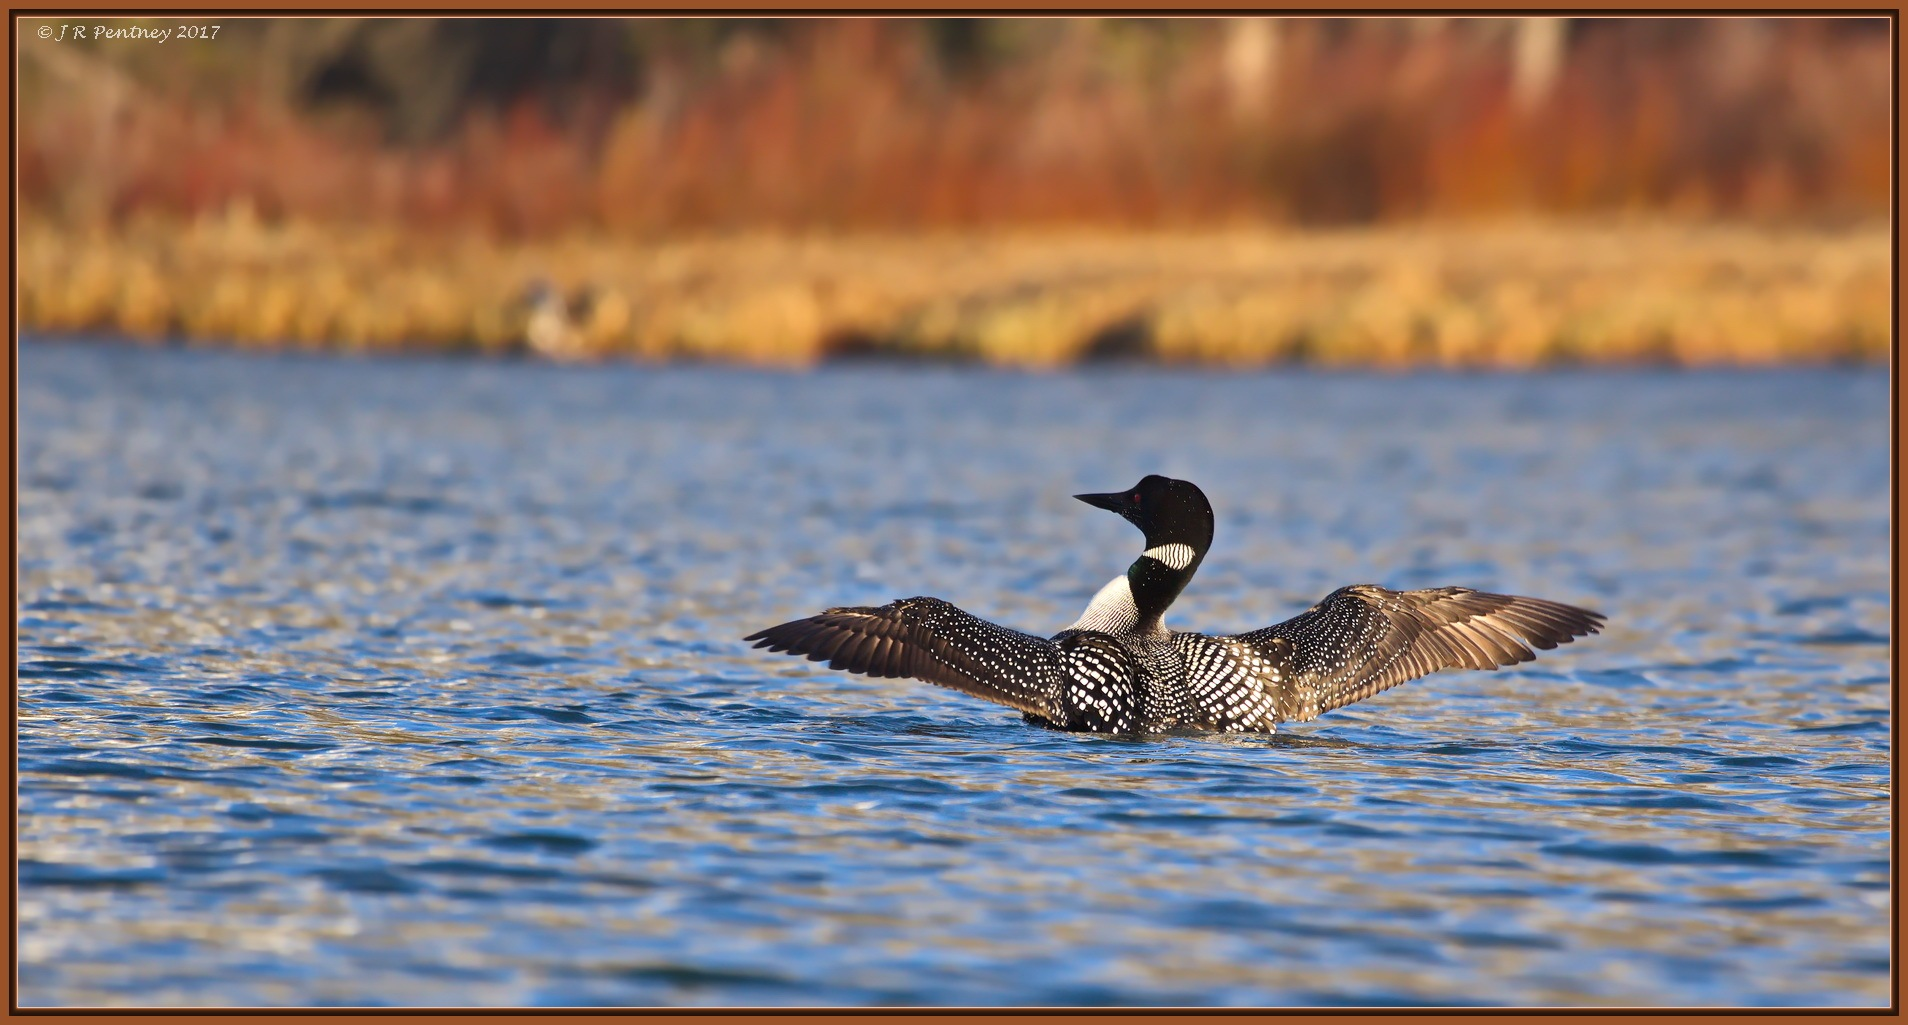 Common Loon by CrzyCnuk